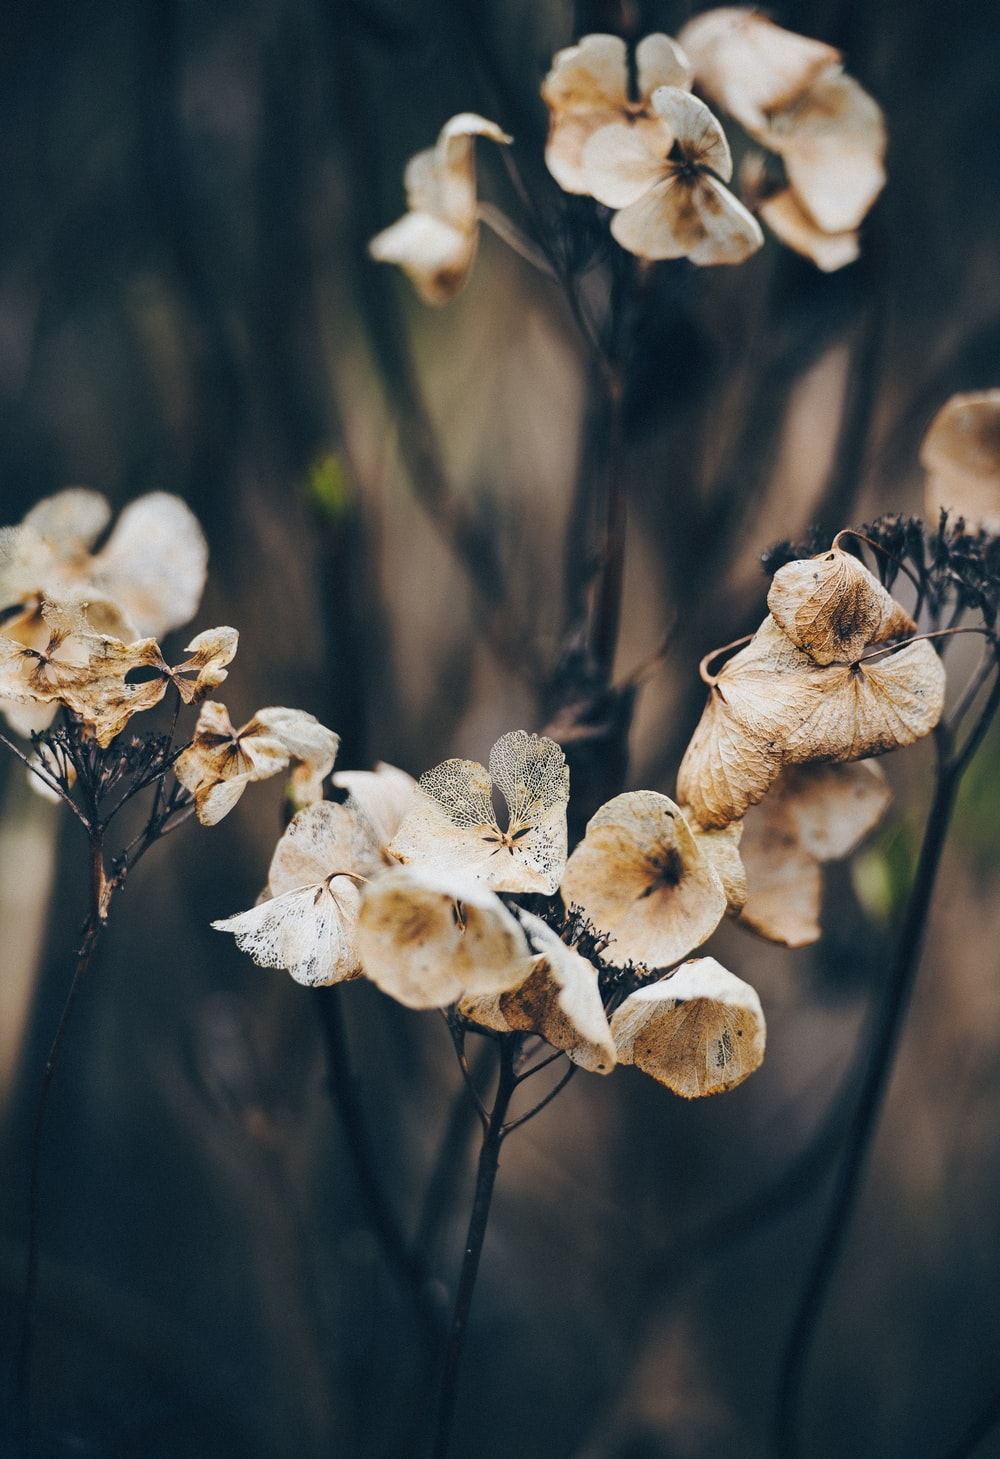 macro photography of dried flowers